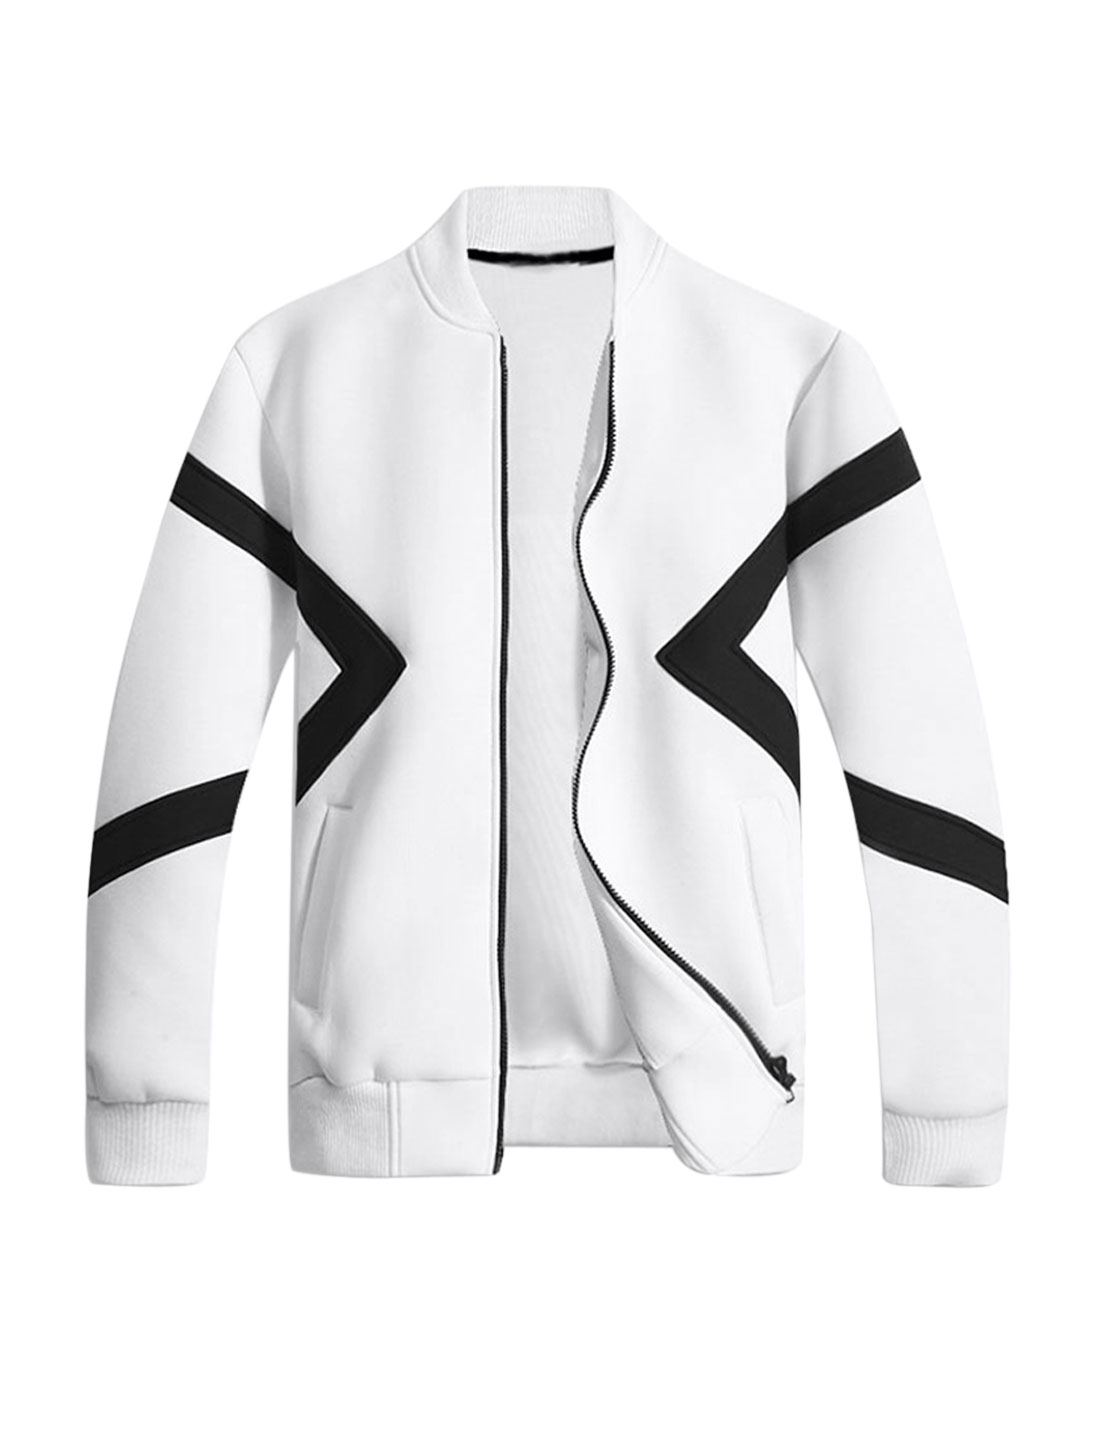 Men Stand Collar Long Sleeves Contrast Color Jacket White M